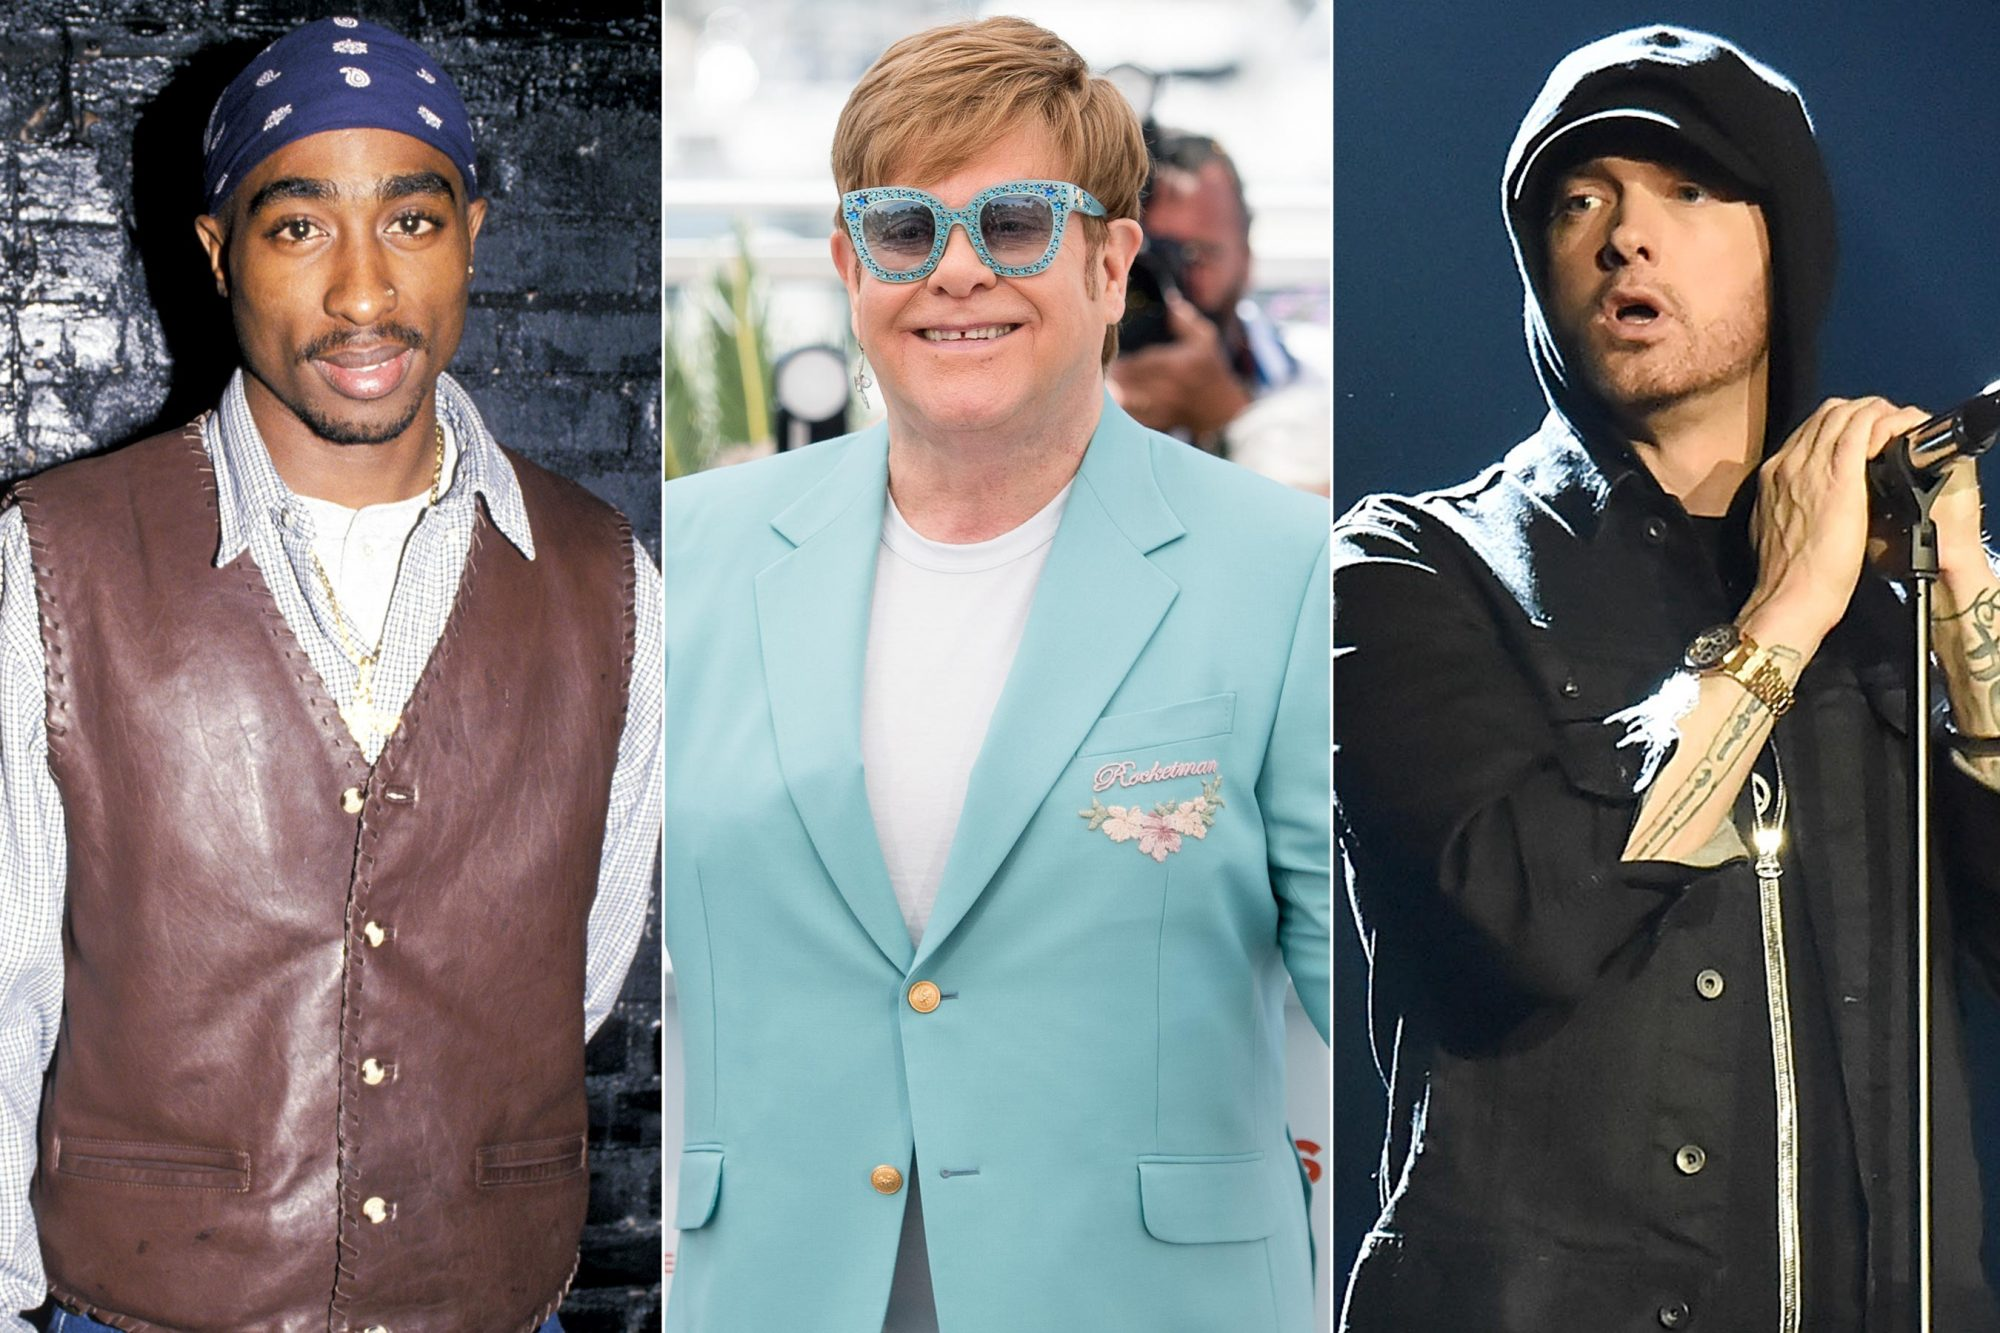 "Party For Cowboy Noir Thriller ""Red Rock West"" Tupac Shakur (Photo by Ron Galella/WireImage) CANNES, FRANCE - MAY 16: Elton John attends the photocall for ""Rocketman"" during the 72nd annual Cannes Film Festival on May 16, 2019 in Cannes, France. (Photo by Samir Hussein/WireImage) LONDON, ENGLAND - NOVEMBER 12: Eminem performs on stage during the MTV EMAs 2017 held at The SSE Arena, Wembley on November 12, 2017 in London, England. (Photo by Kevin Mazur/WireImage)"